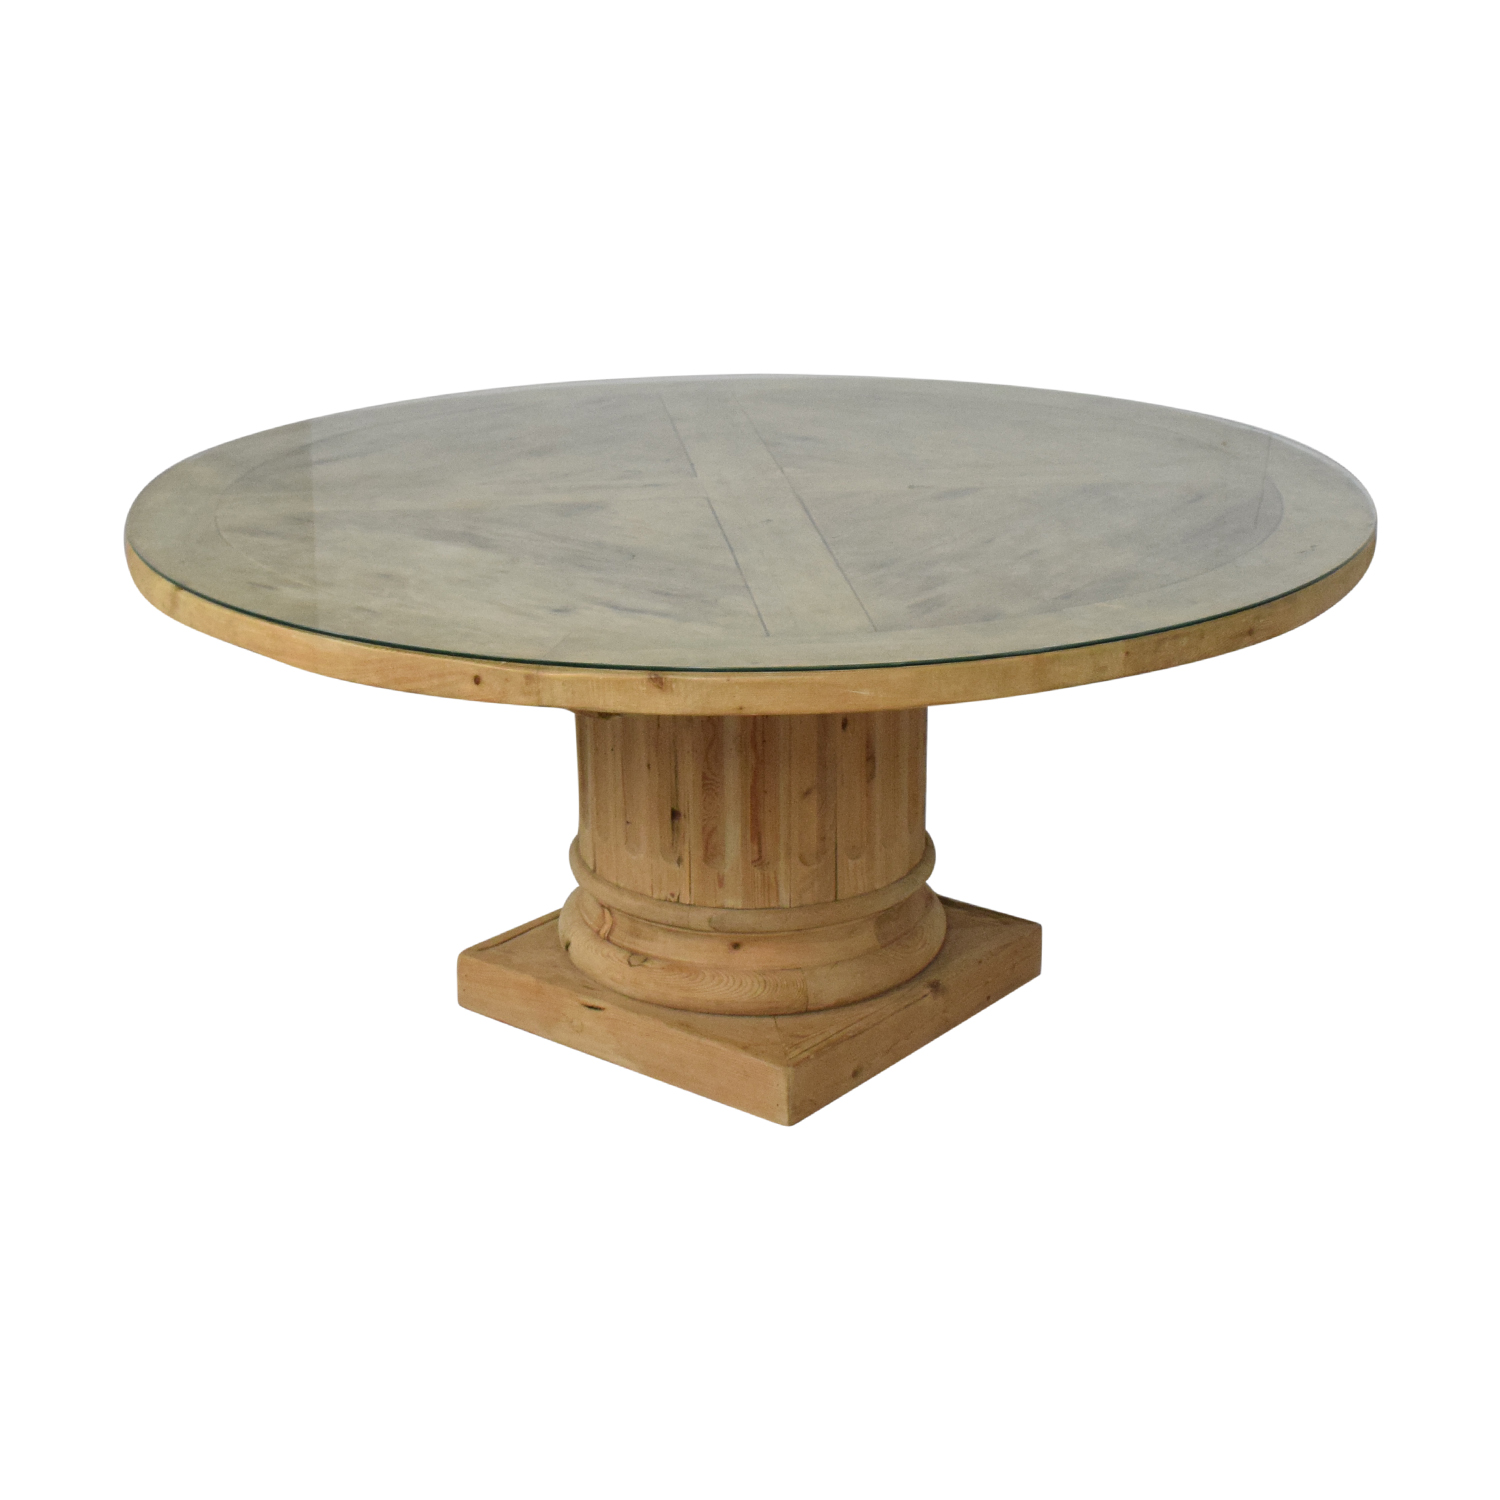 Restoration Hardware Restoration Hardware Salvaged Wood Architectural Column Dining Table discount